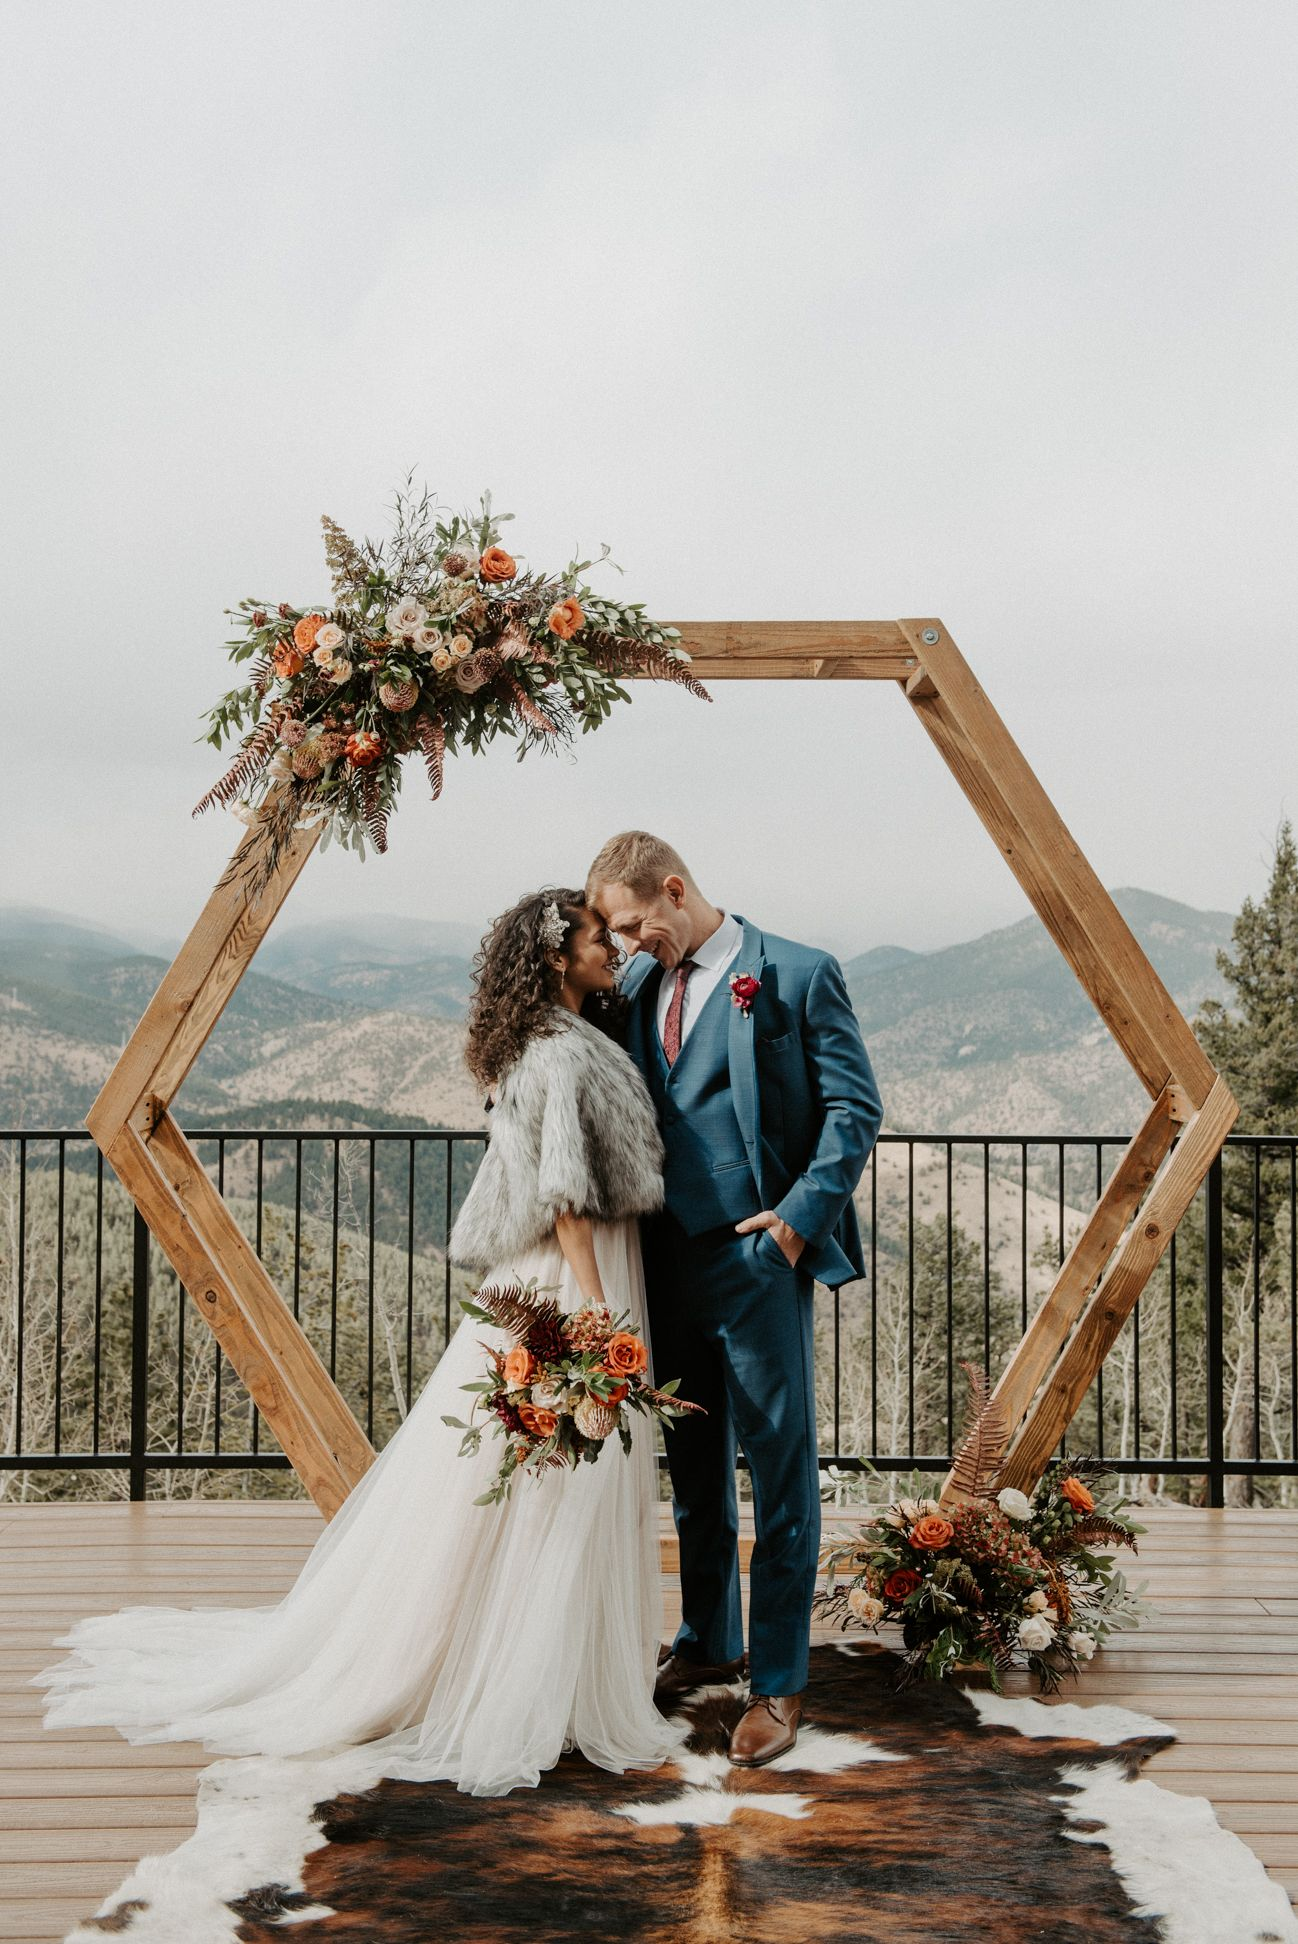 Mountain Glam Wedding Inspiration At North Star Gatherings Via Rocky Mountain Bride In 2020 Mountain Bride Outdoor Wedding Pictures Glam Wedding